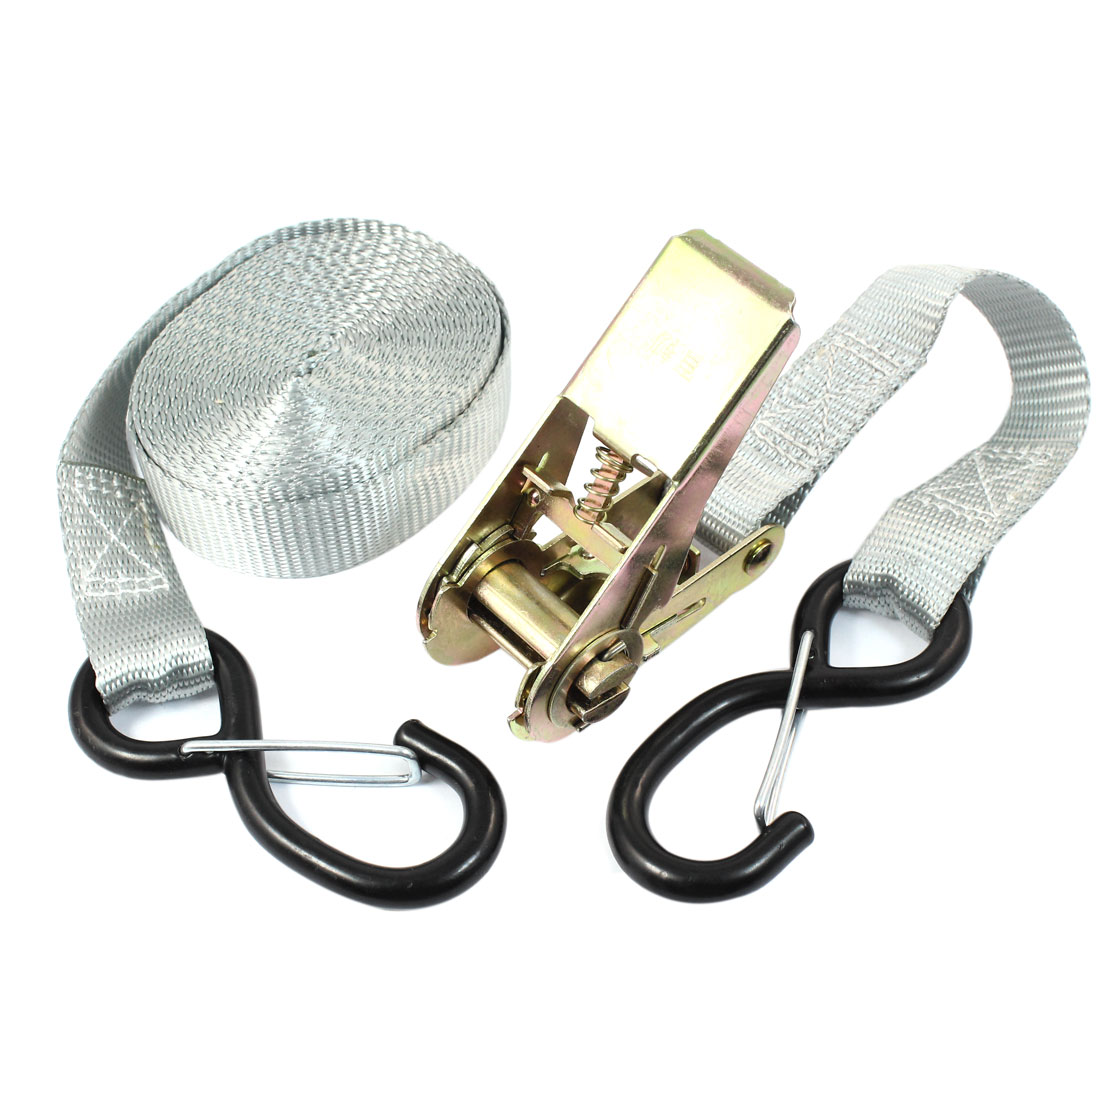 S Shape Metal Hook Cargo Binding Band Ratchet Tie Down Strap 5M 16ft Gray